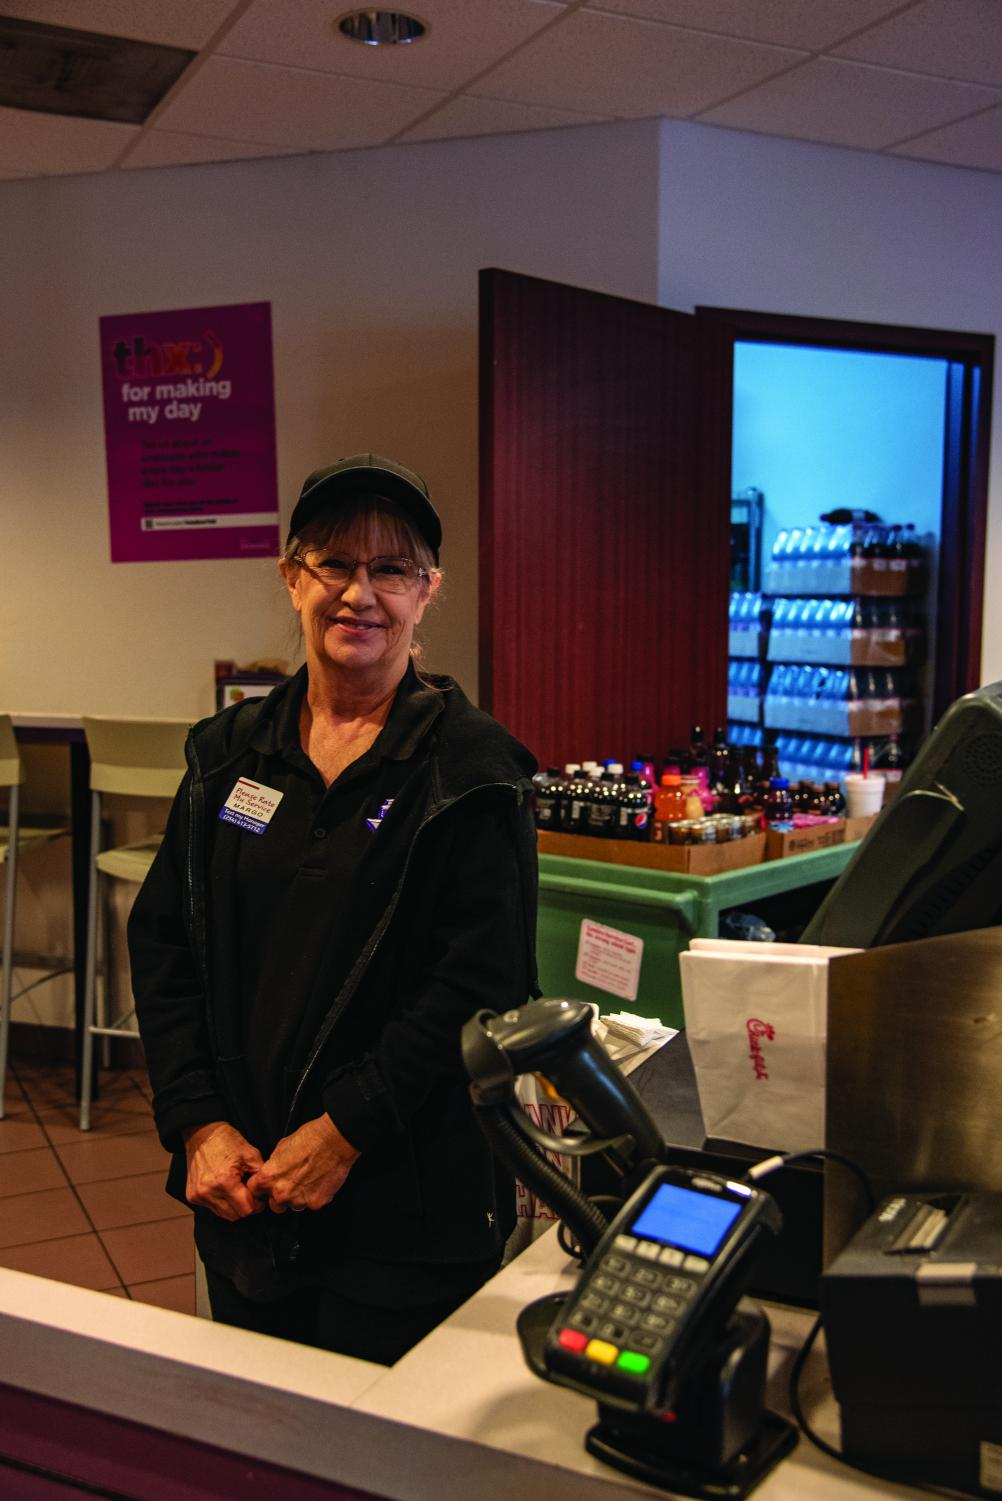 Margo is a Sodexo employee and is a favorite among students at the Texan Star Food Court found in the Barry B. Thompson Student Center.